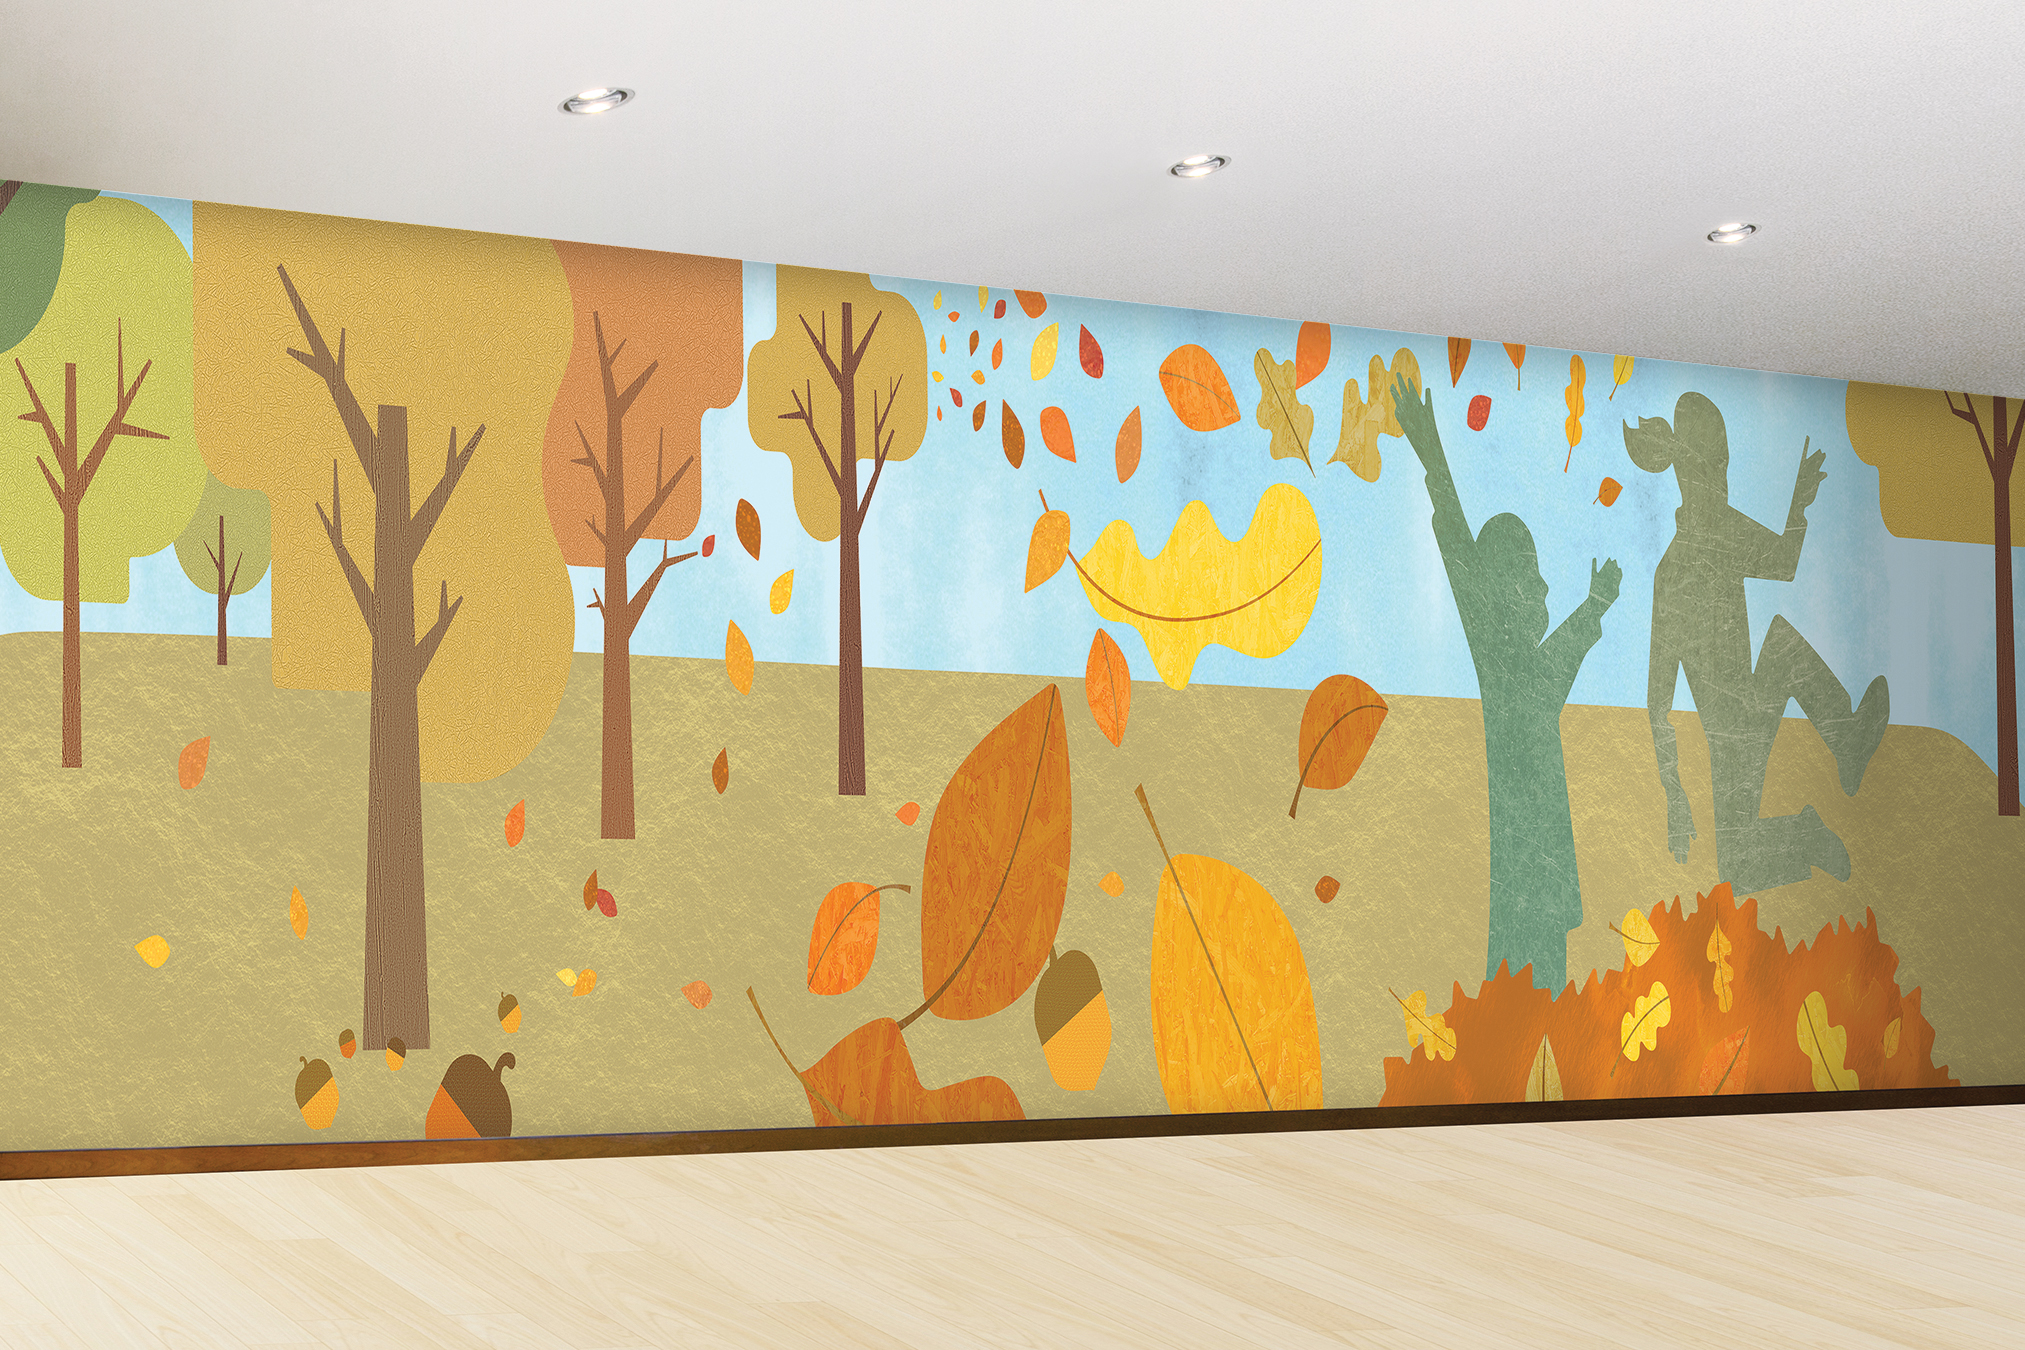 Giant Corridor Wall Mural For Non-Profit Client